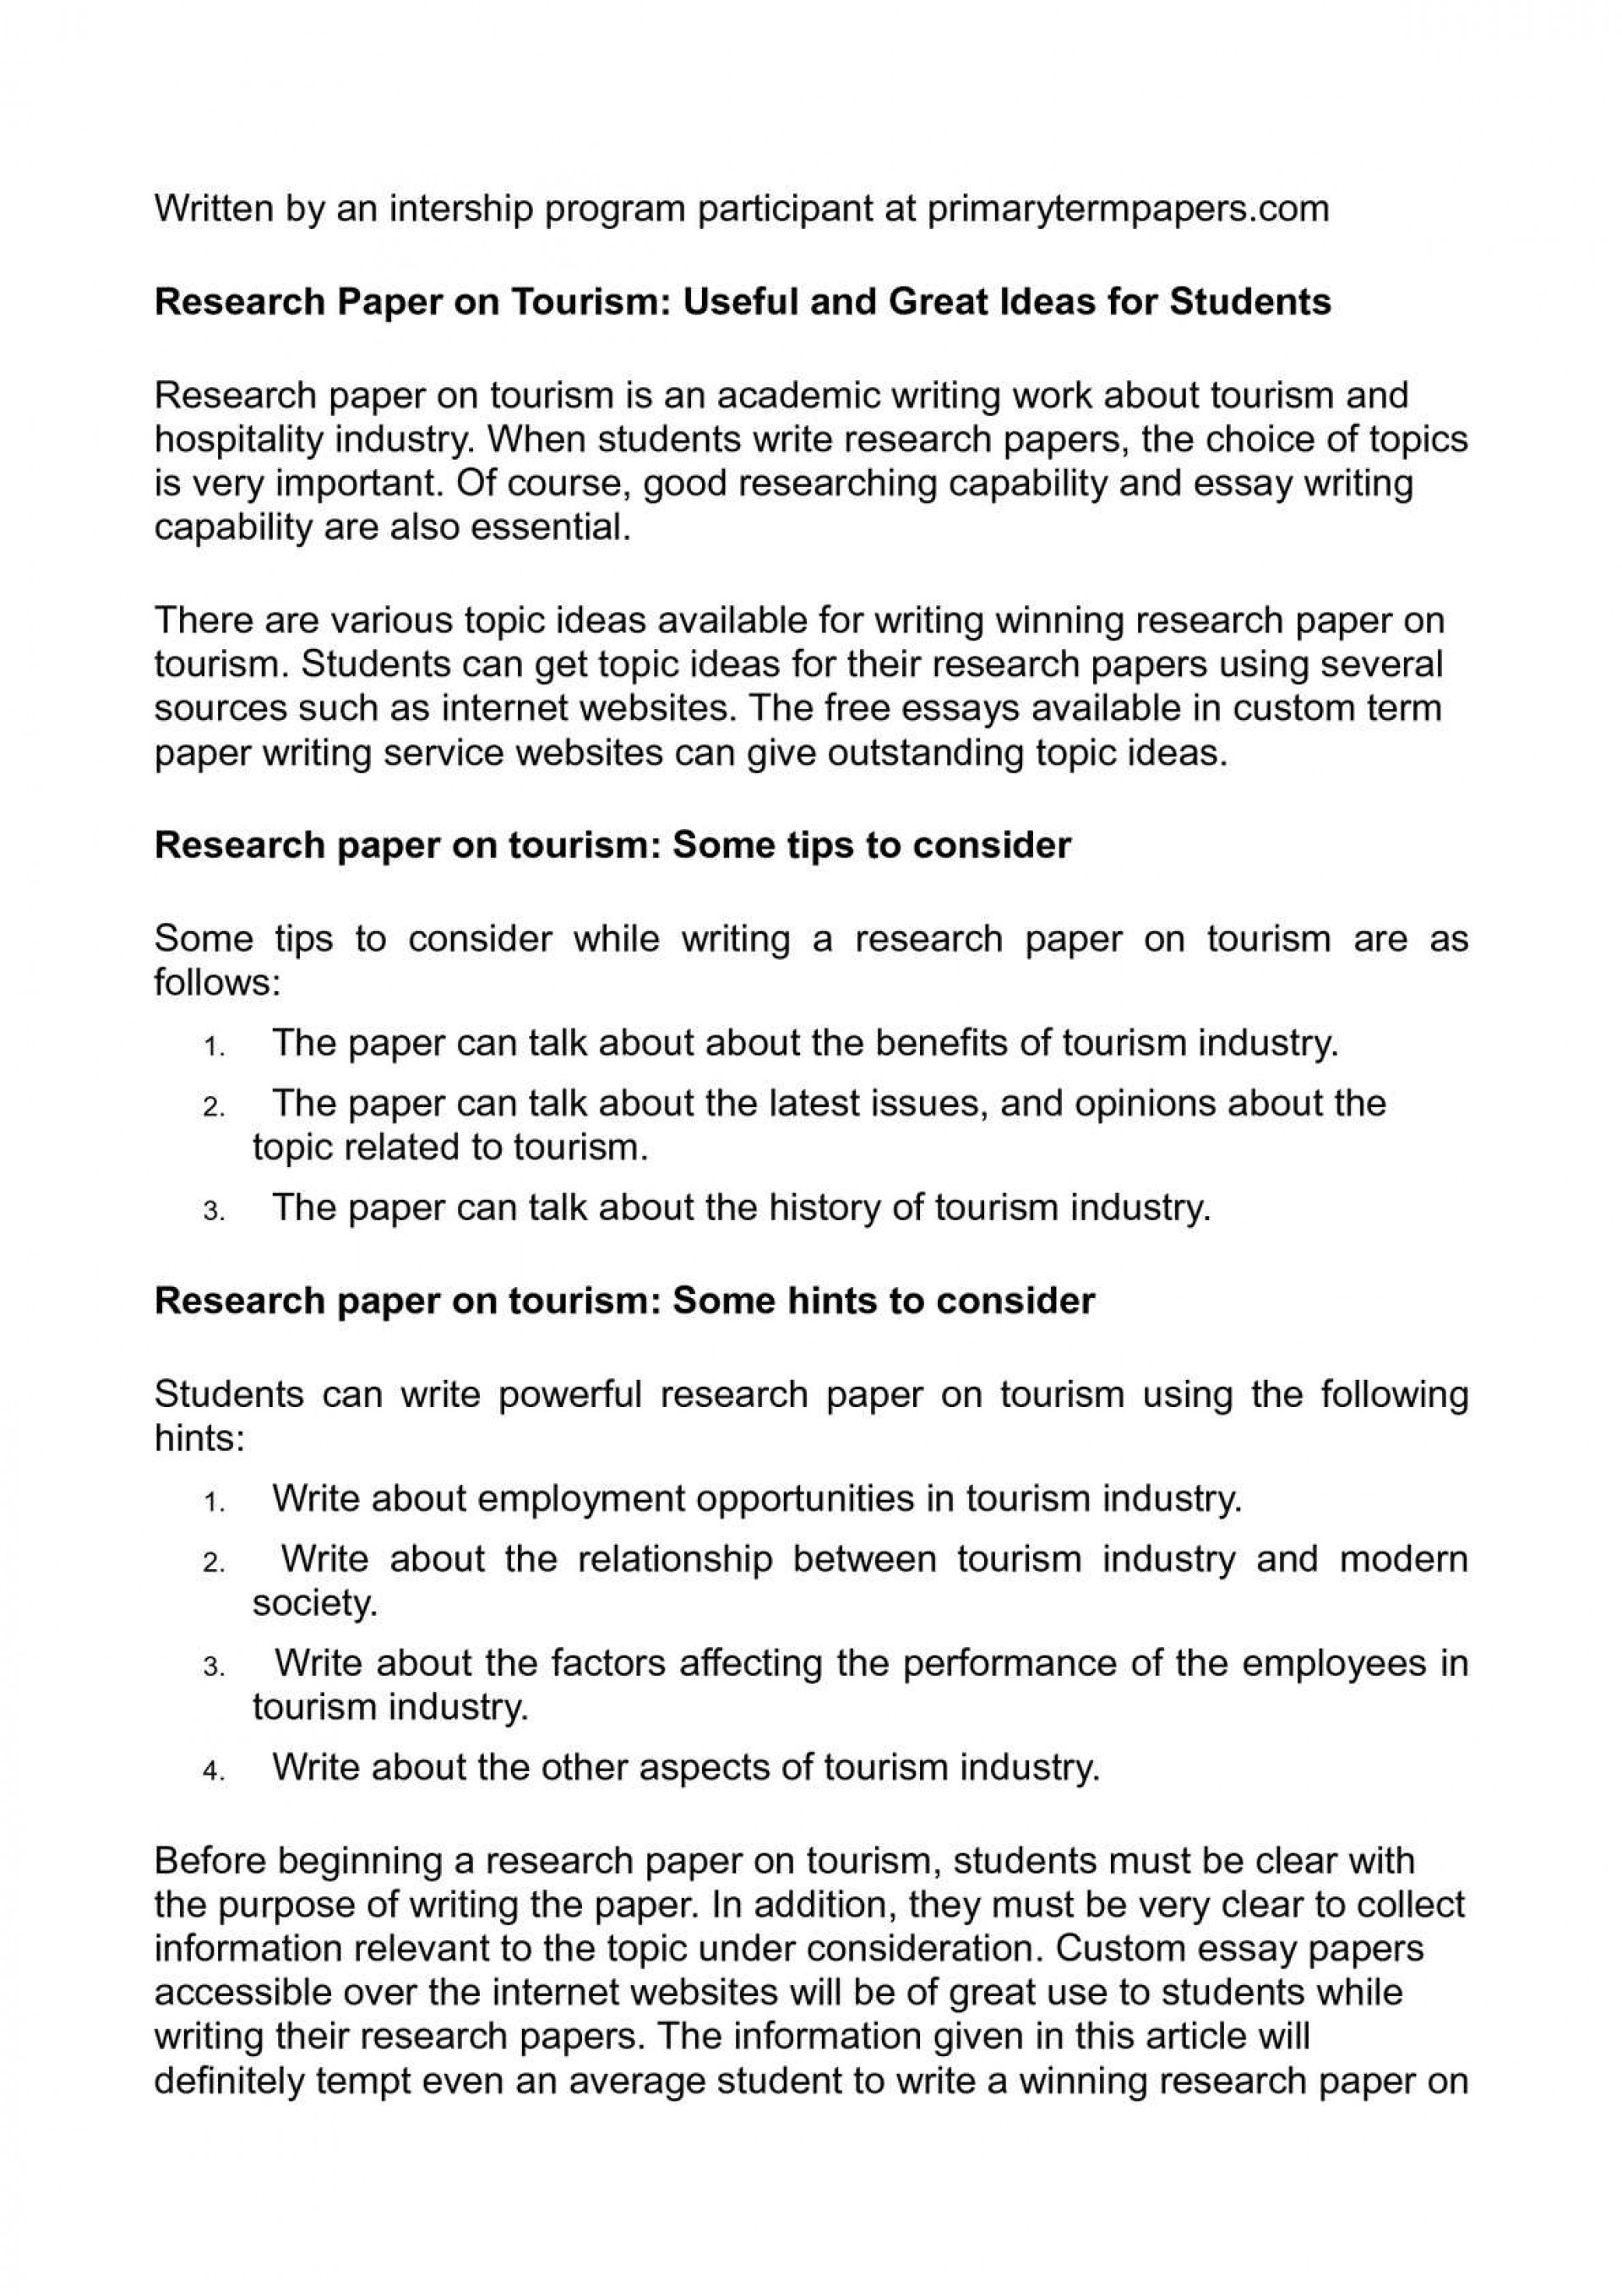 005 P1 Research Paper Best Free Outstanding Websites 1920